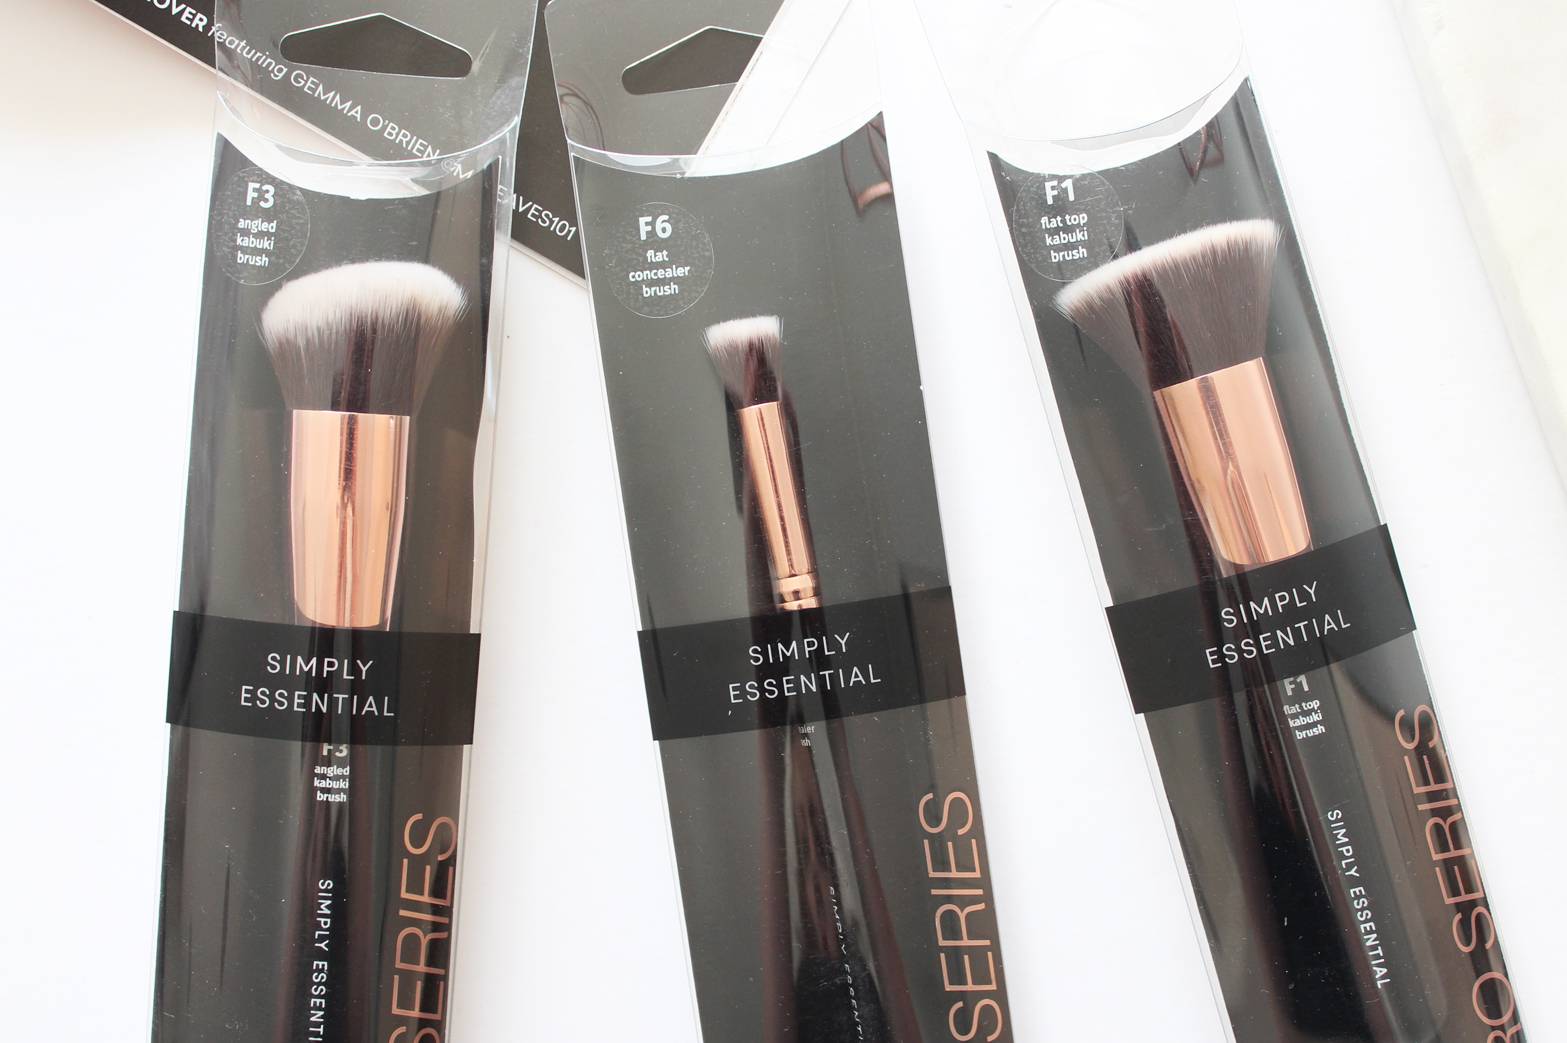 SIMPLY ESSENTIAL | Pro Series Makeup Brushes - Review - CassandraMyee